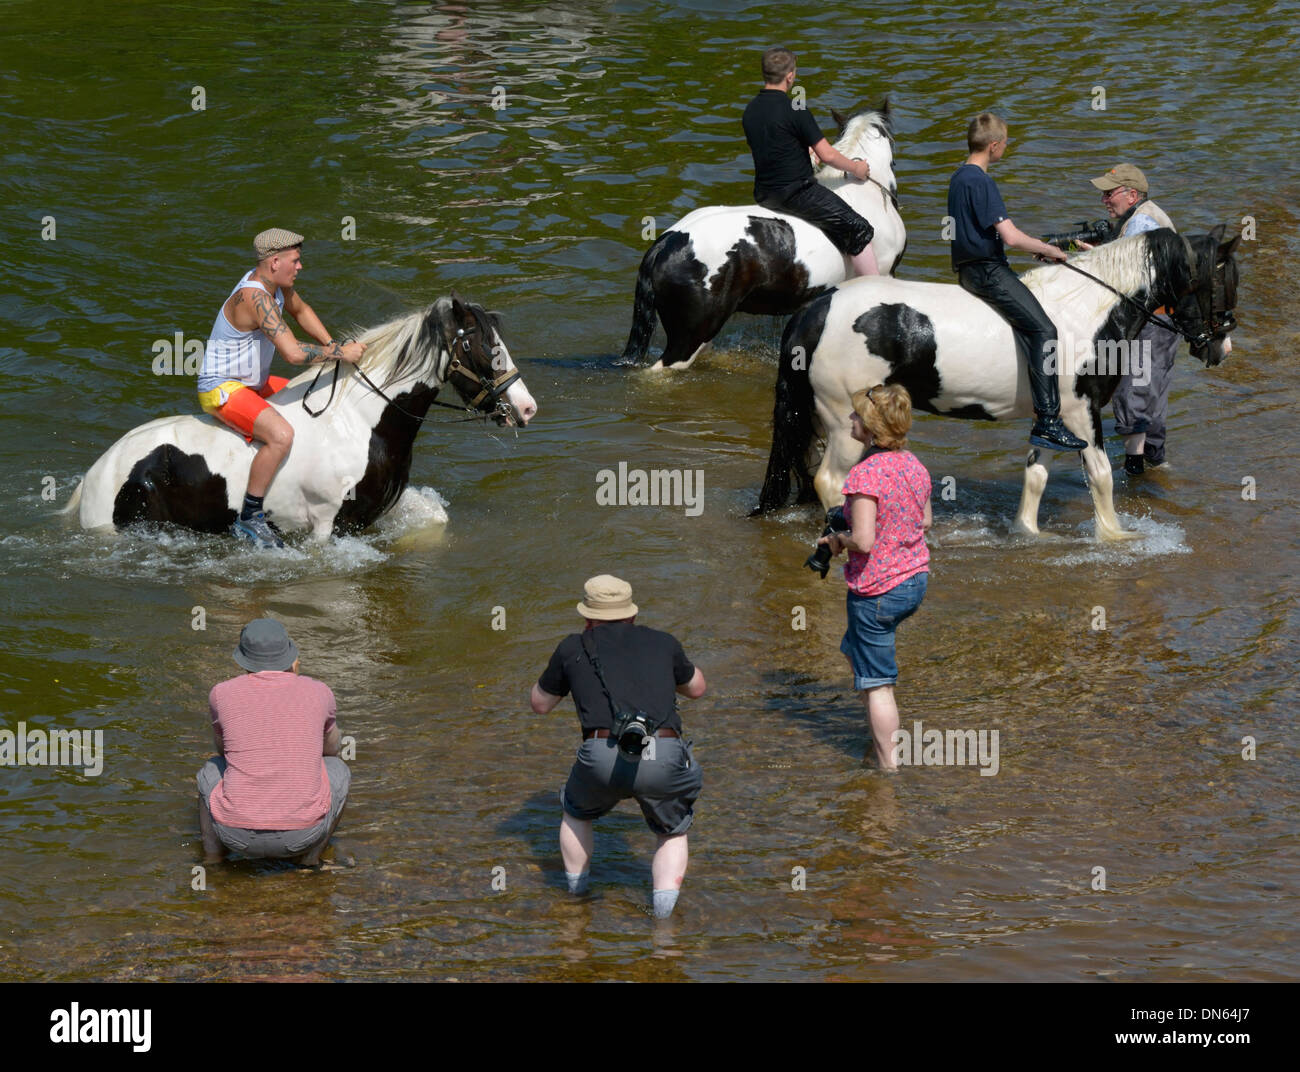 Gypsy travellers with horses and photographers in River Eden. Appleby Horse Fair. Appleby-in-Westmorland, Cumbria, England, U.K. - Stock Image